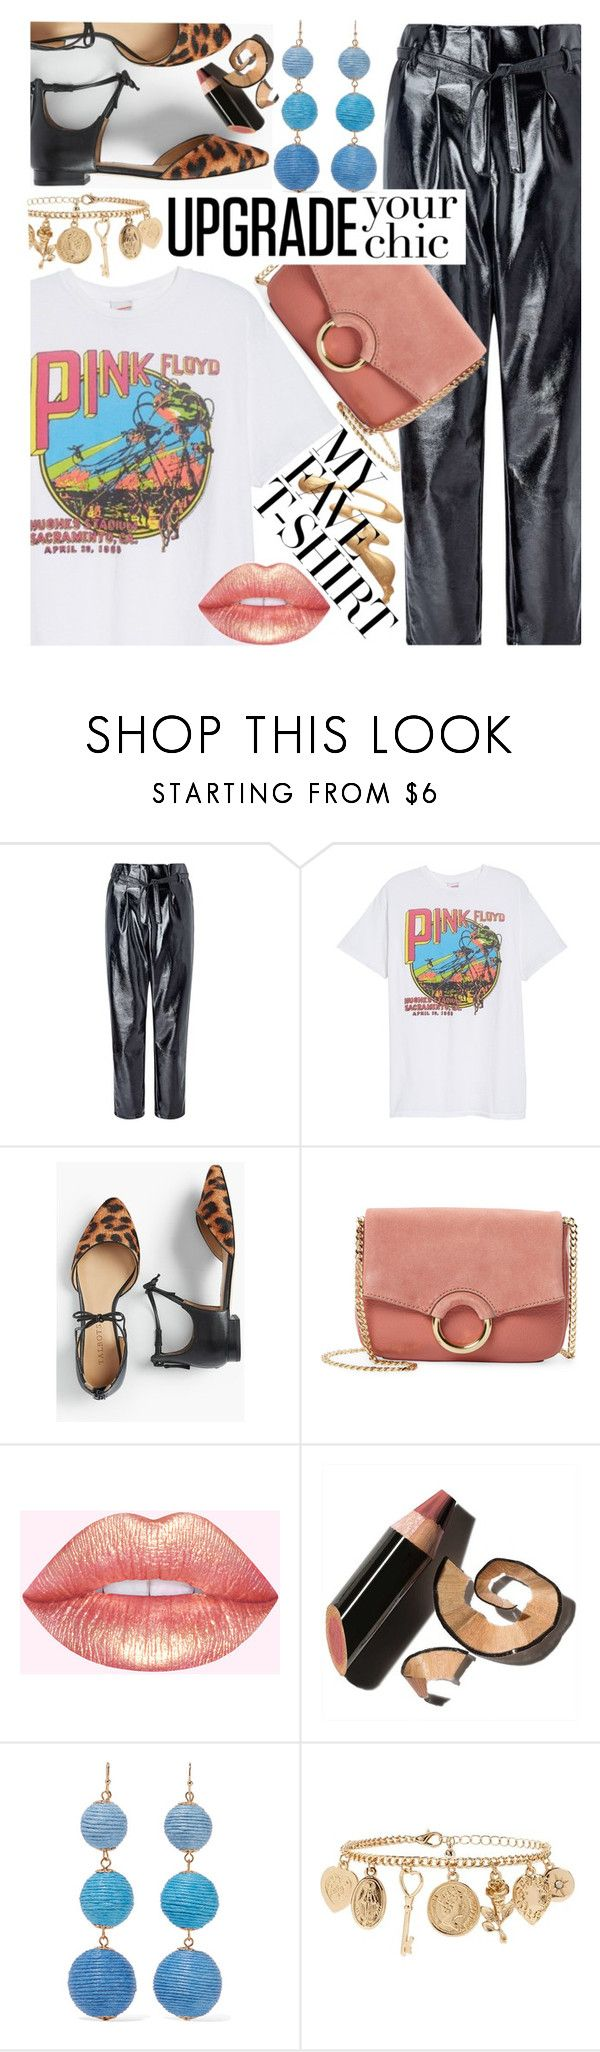 """Dress Up a T-Shirt - Style on a Budget"" by maranella ❤ liked on Polyvore featuring Miss Selfridge, Junk Food Clothing, Talbots, Vince Camuto, Bobbi Brown Cosmetics, Kenneth Jay Lane, Forever 21 and MyFaveTshirt"